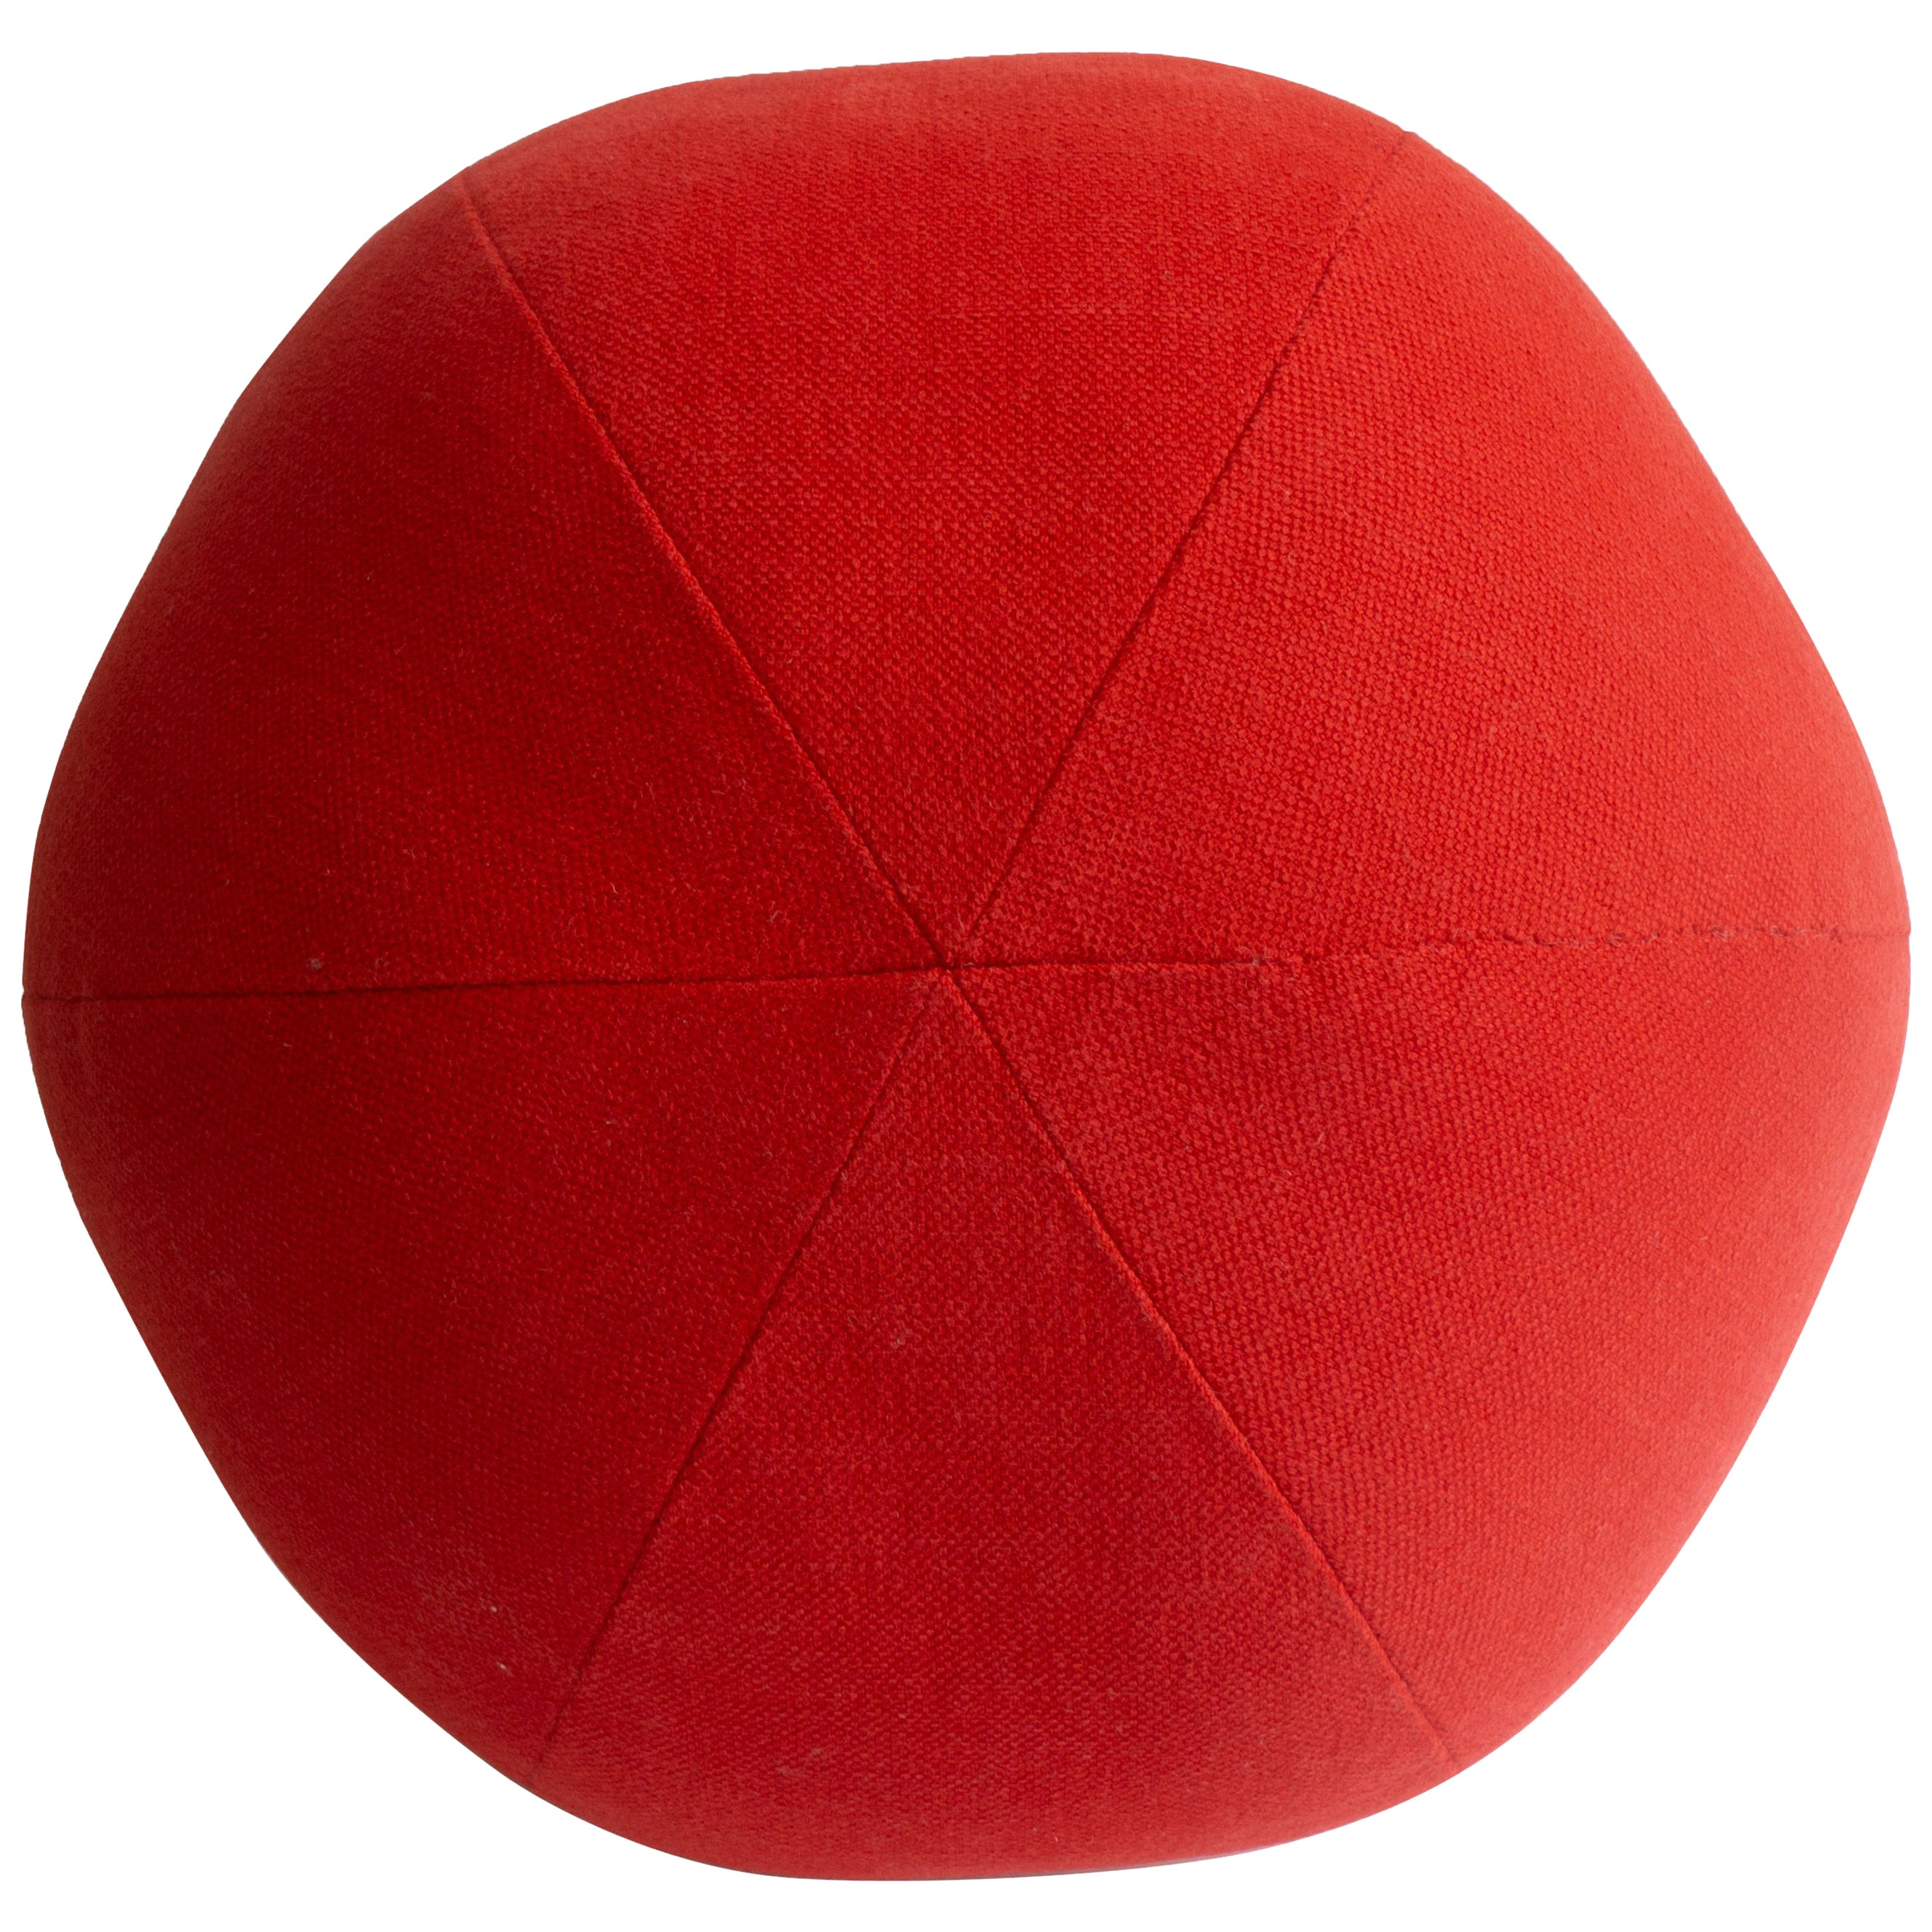 Bright Red Round Ball Throw Pillow